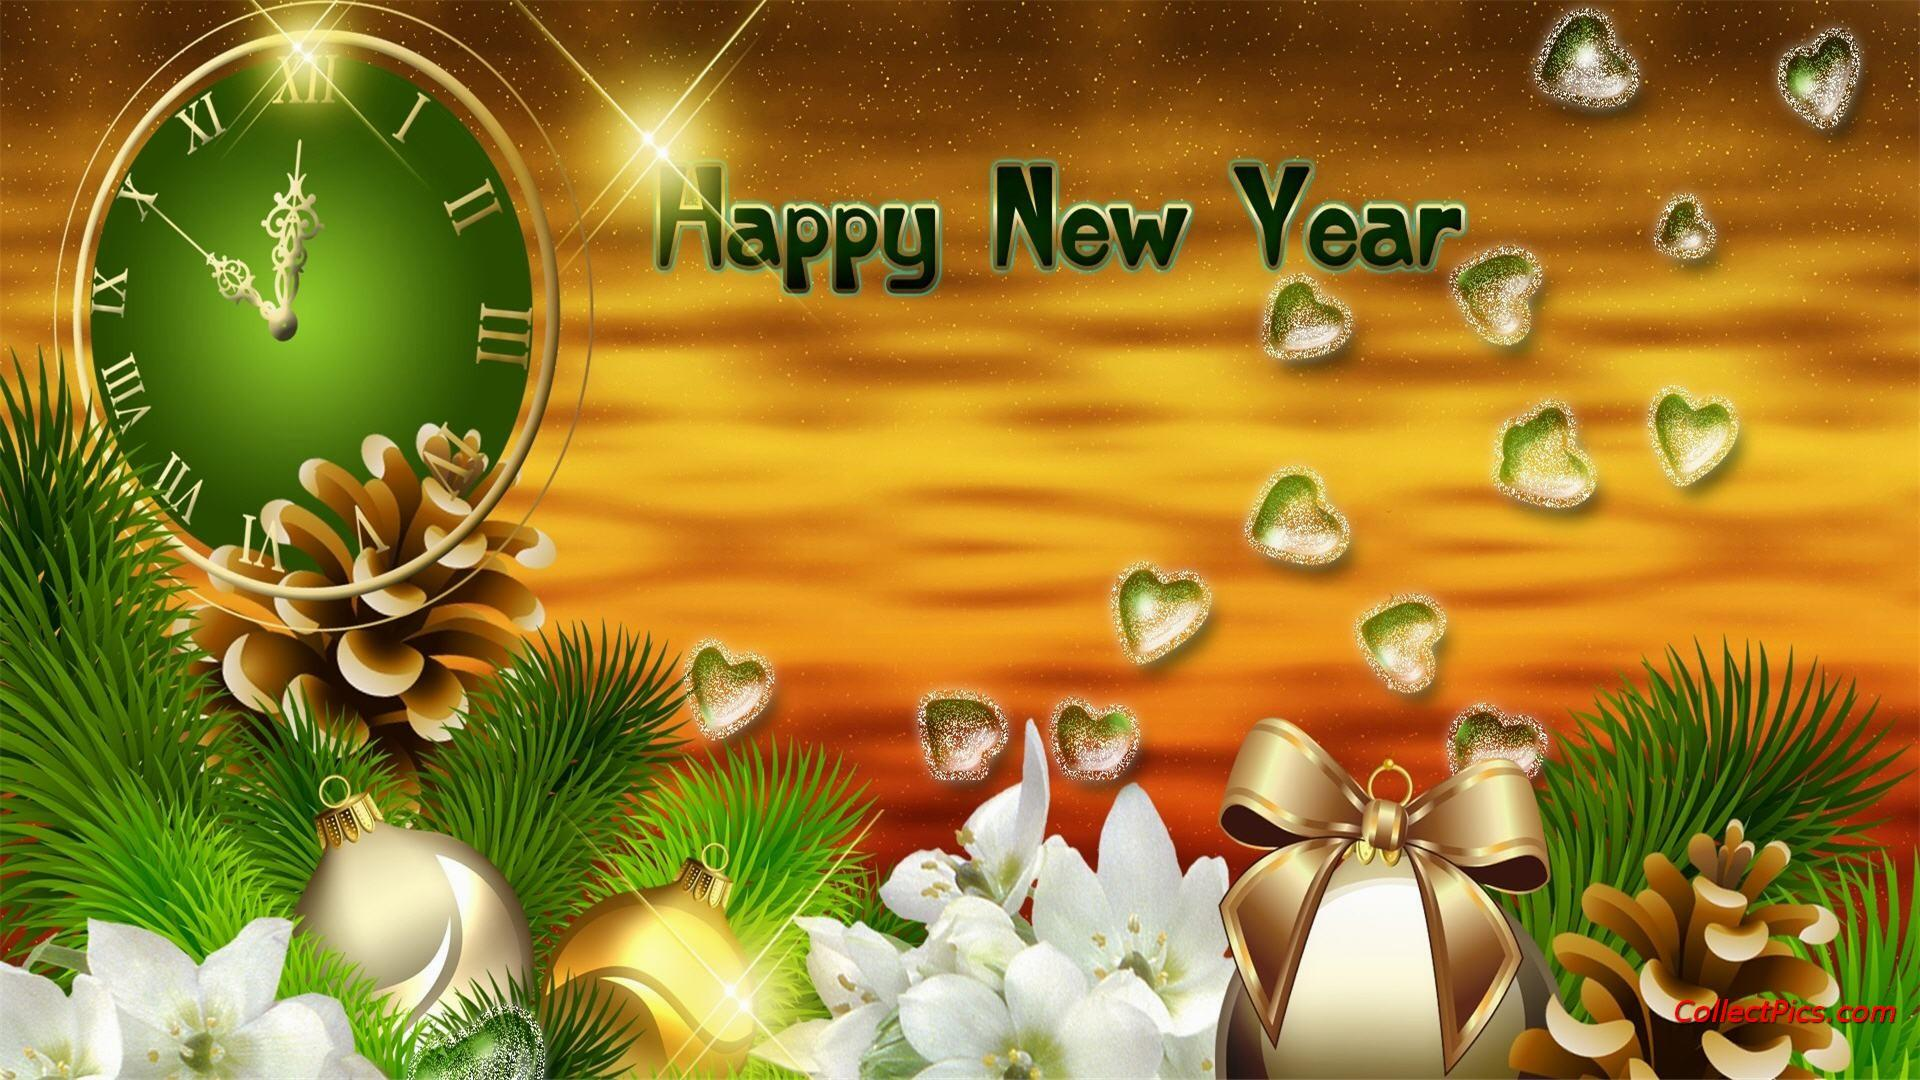 Beautiful Hd Wallpapers For Happy New Year 2020 Free Download